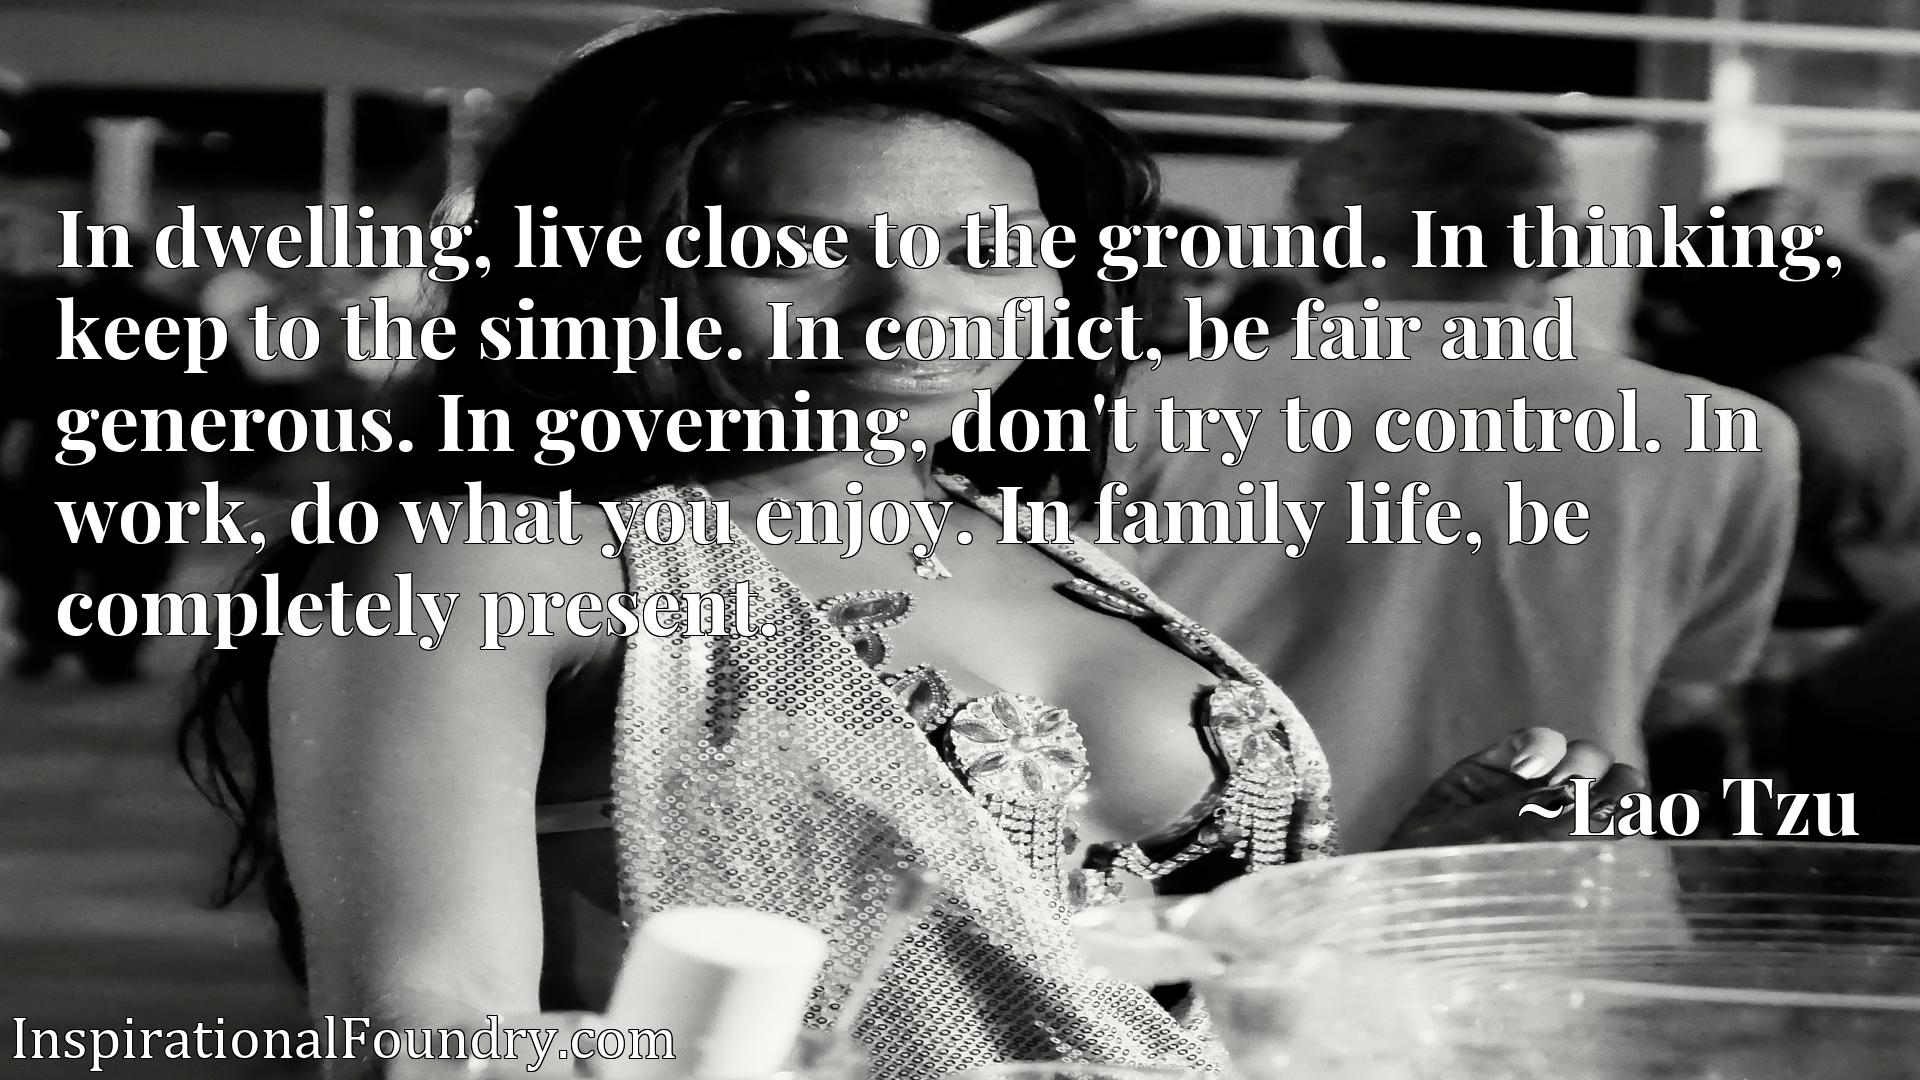 Quote Picture :In dwelling, live close to the ground. In thinking, keep to the simple. In conflict, be fair and generous. In governing, don't try to control. In work, do what you enjoy. In family life, be completely present.